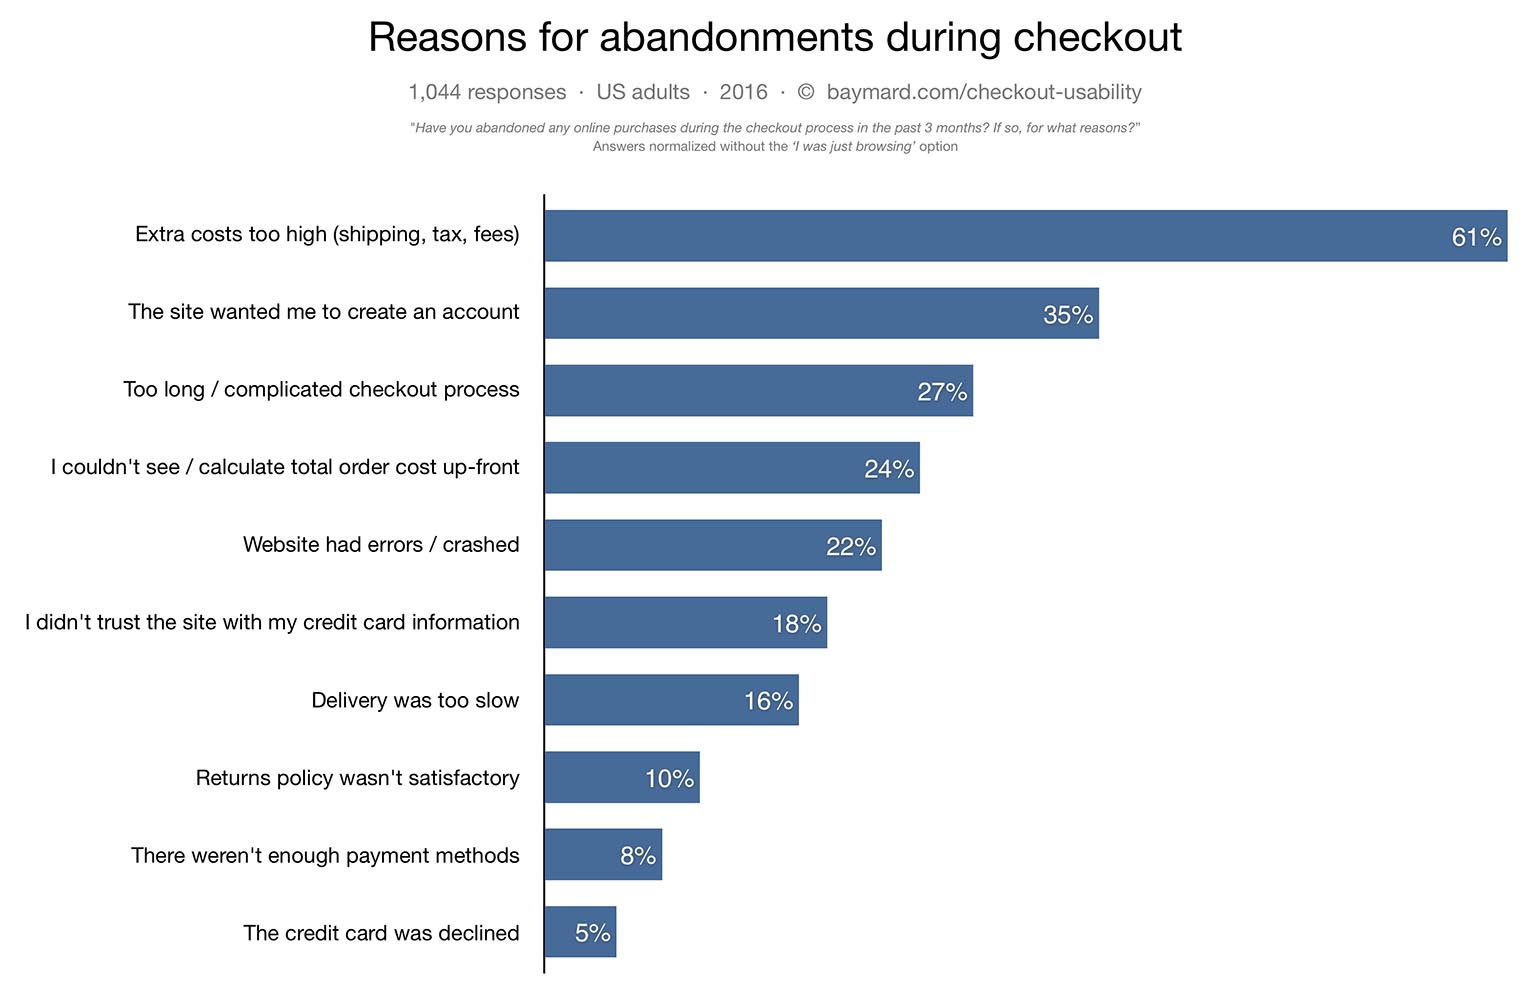 Reasons for checkout abandonment, Baymard Institute